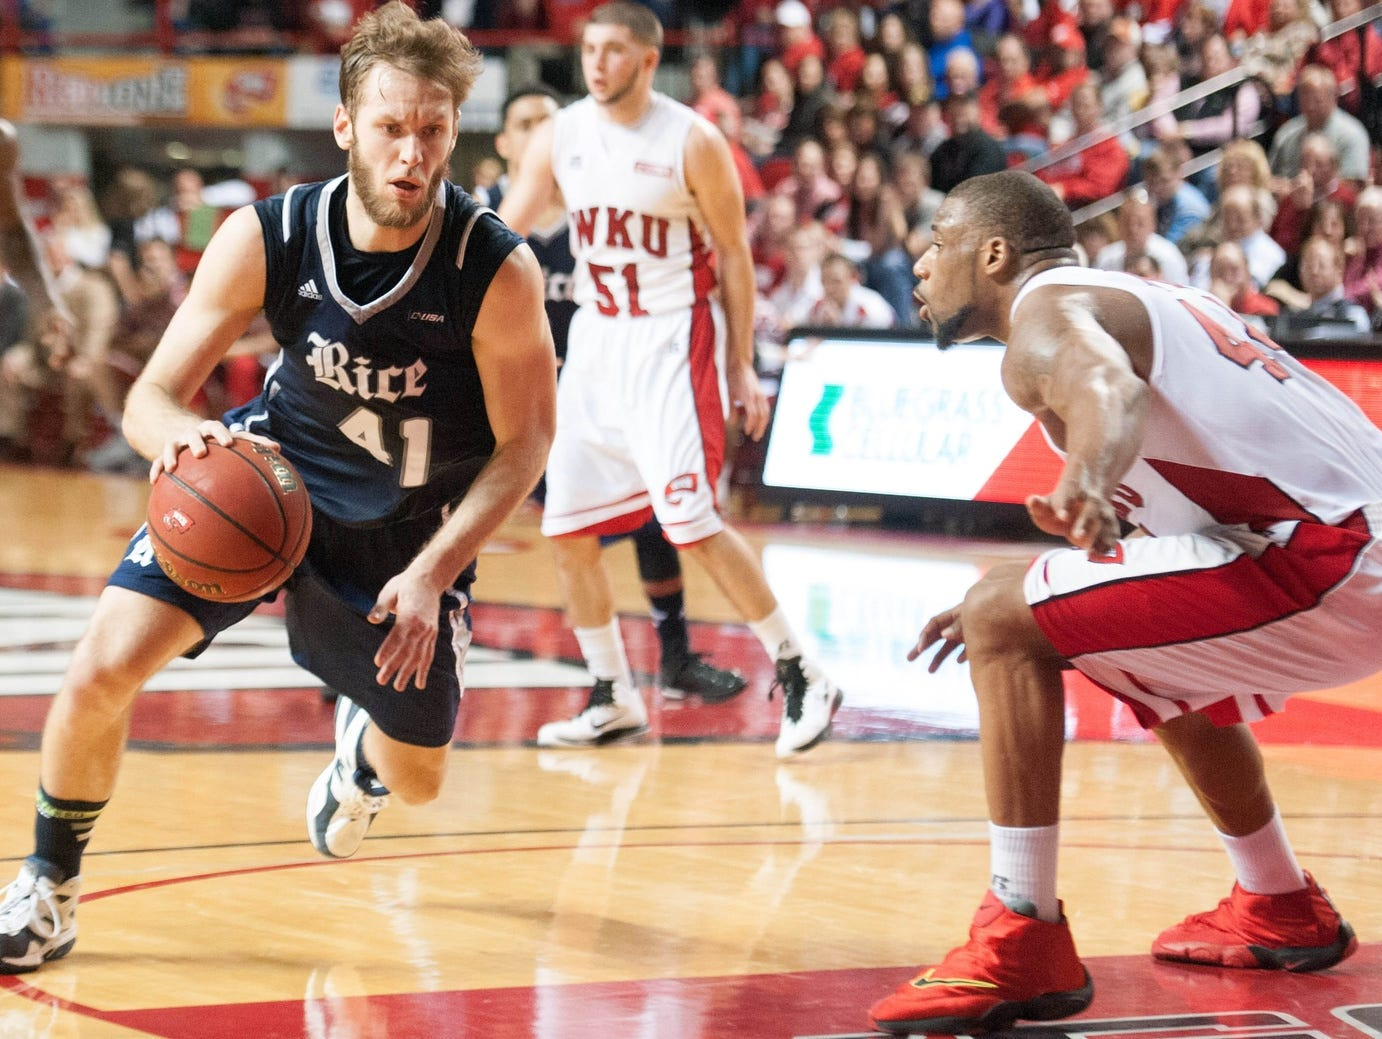 Feb 7, 2015; Bowling Green, KY, USA; Rice Owls forward Seth Gearhart (41) drives the ball away from Western Kentucky Hilltoppers forward George Fant (44) during the second half at E.A. Diddle Arena.